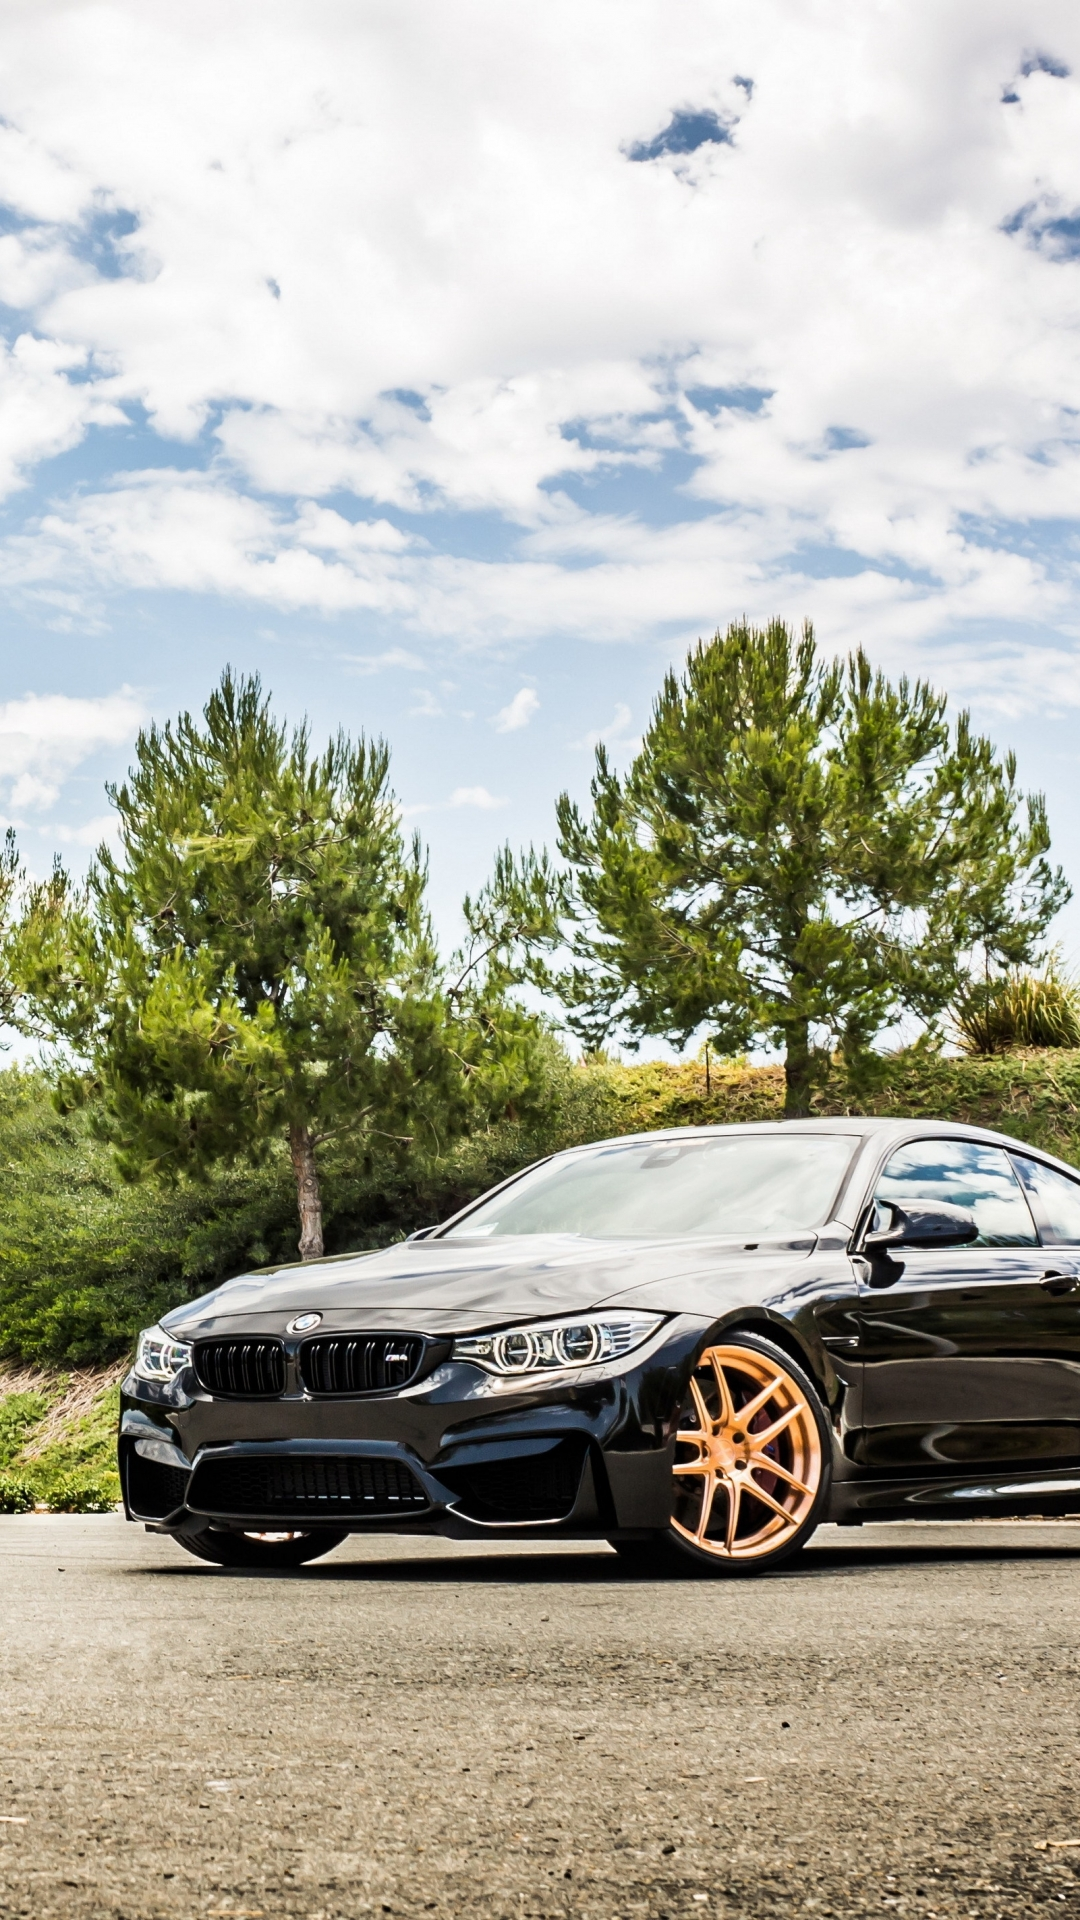 online store b50d2 c546a 1 Bmw M4 Coupe Apple/iPhone 6 Plus (1080x1920) Wallpapers - Mobile Abyss